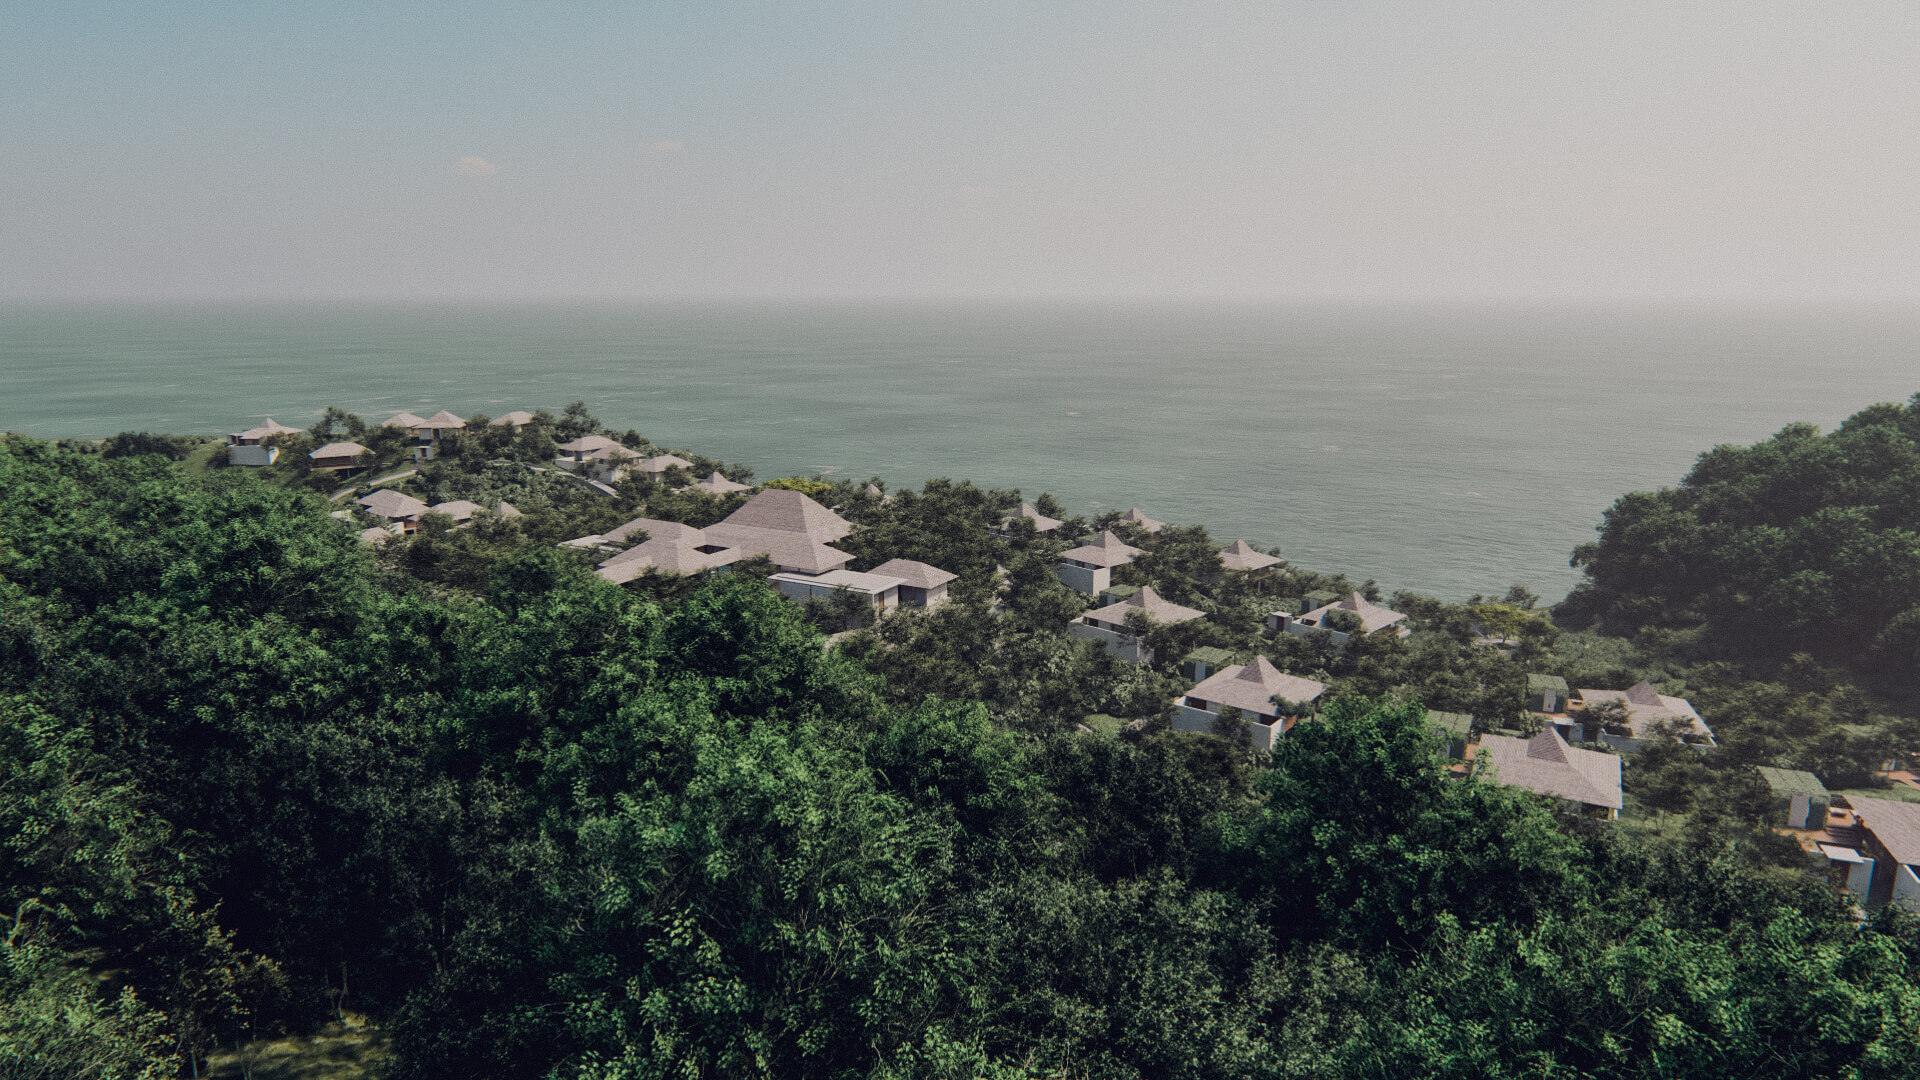 Eco Resort in Lombok Aerial View